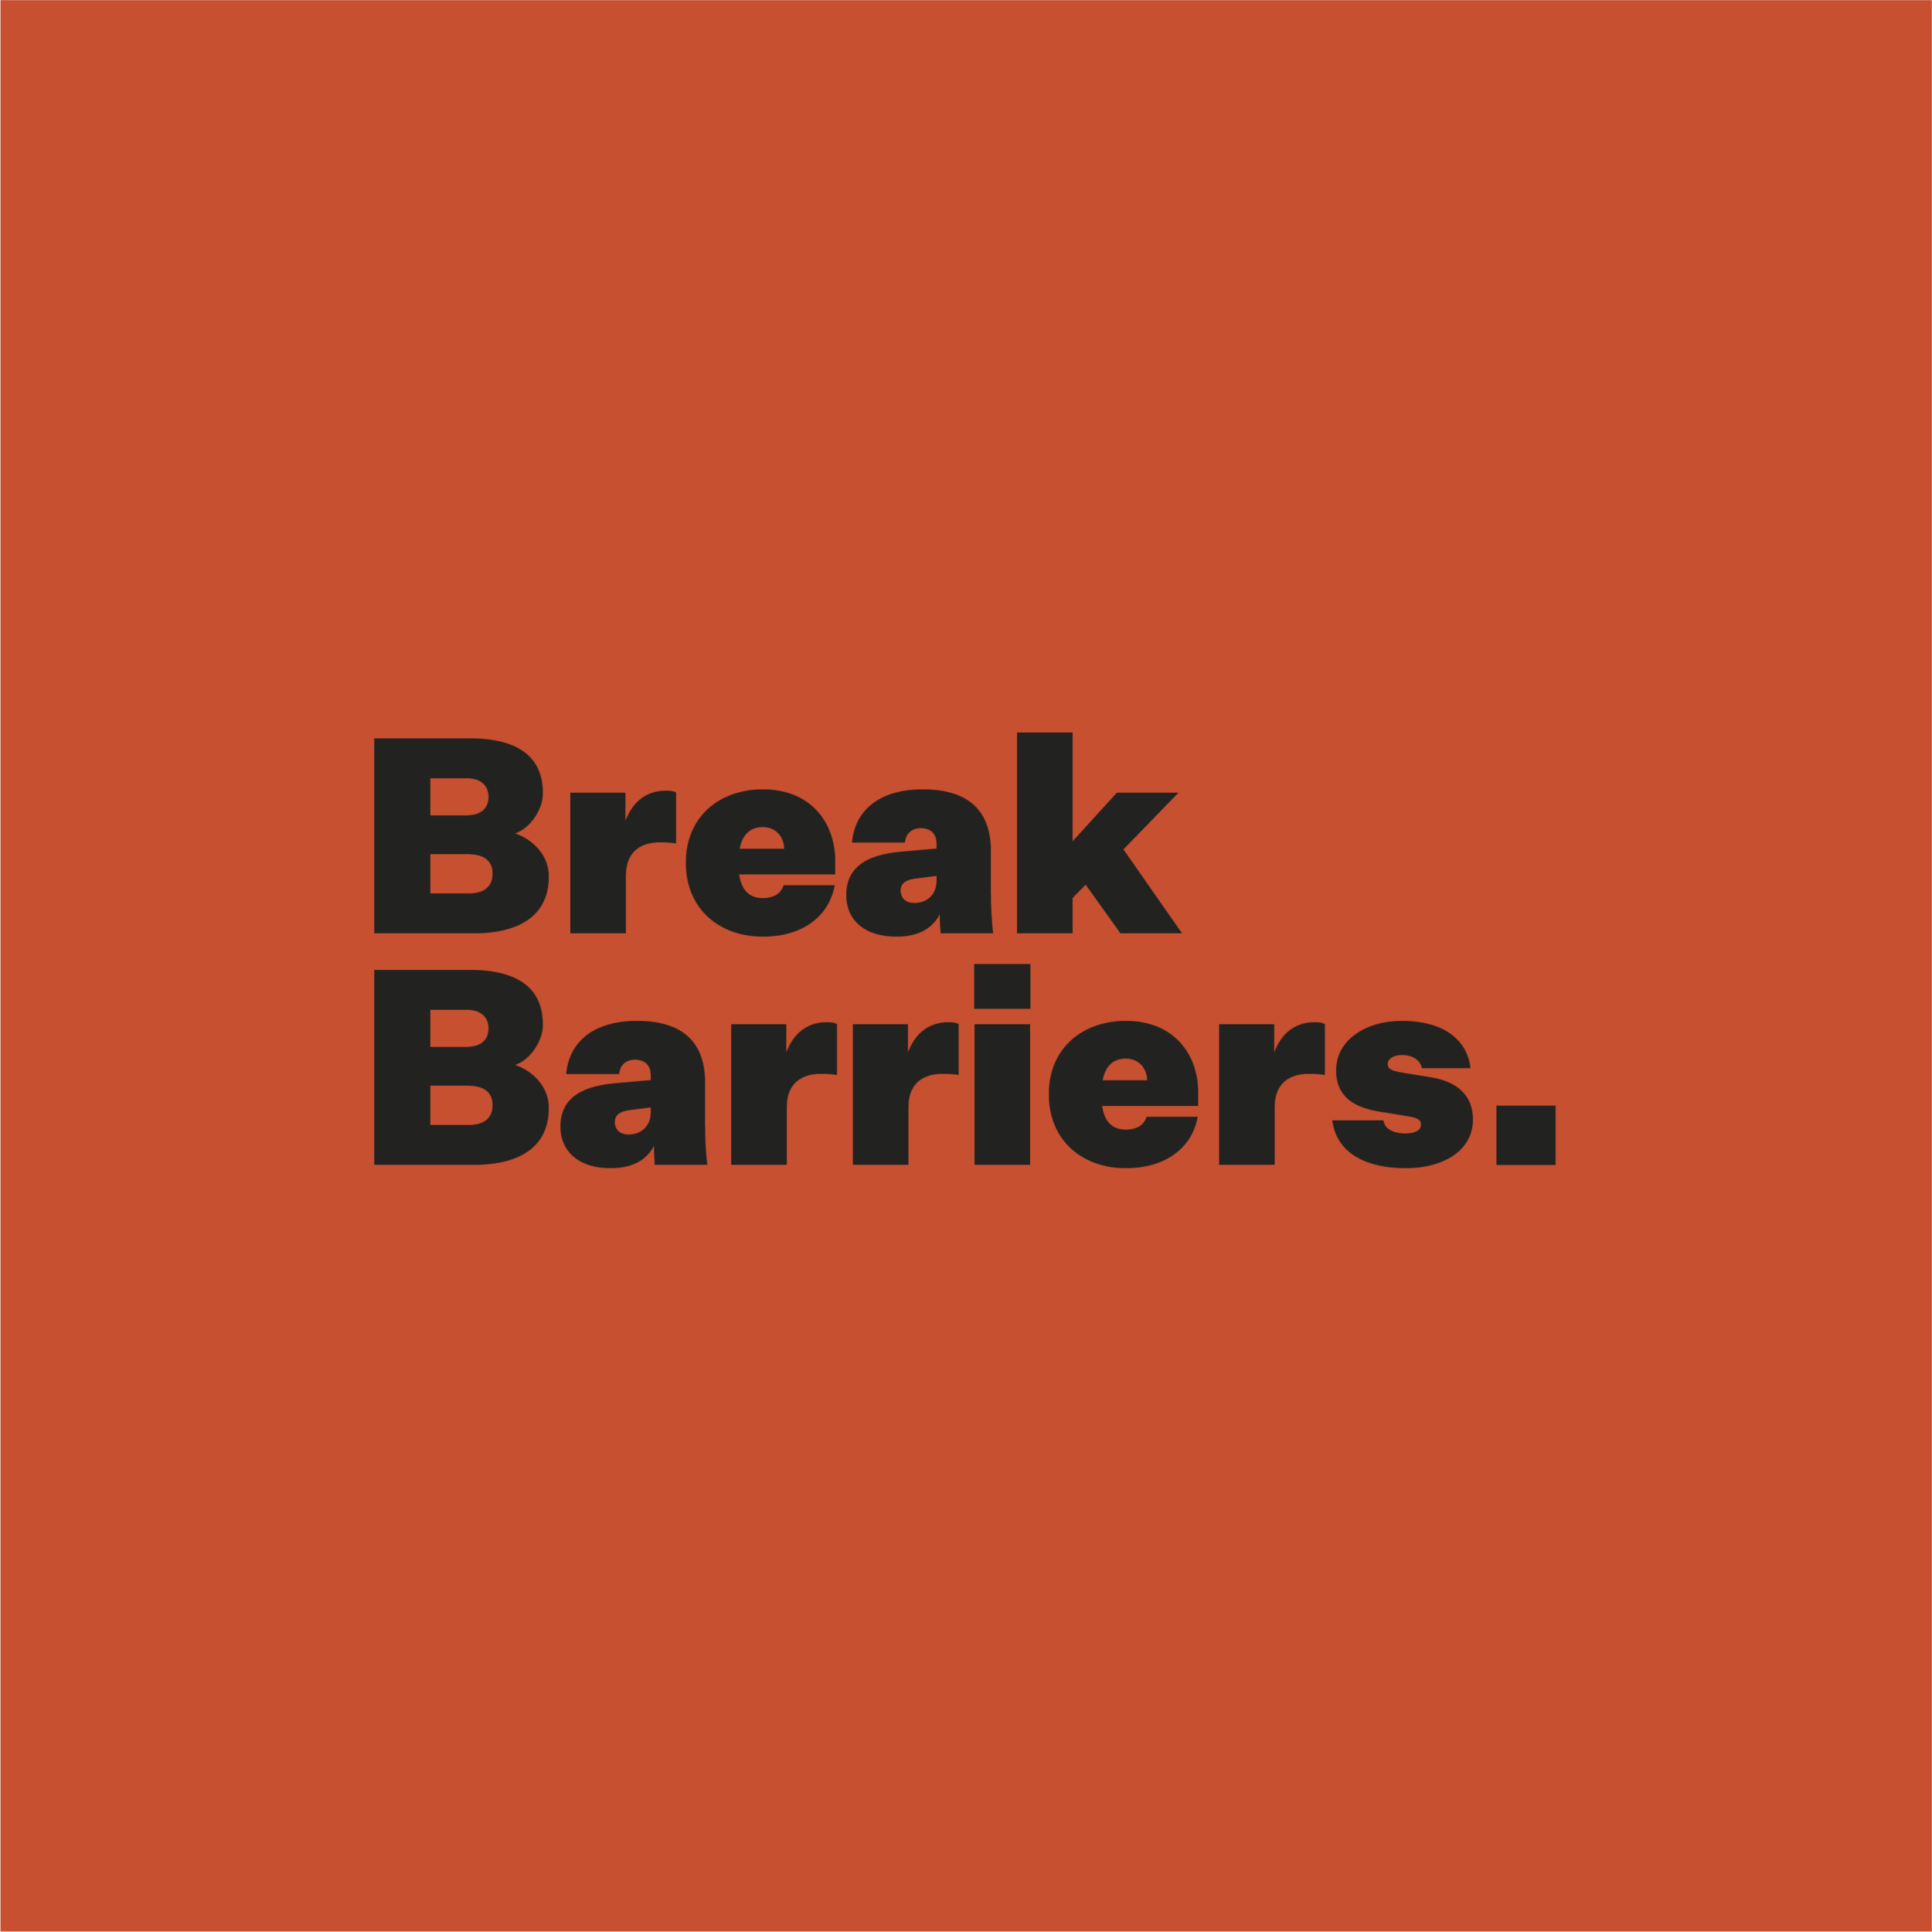 Brad Brosnan - Social Media - Colour_Break Barriers.png